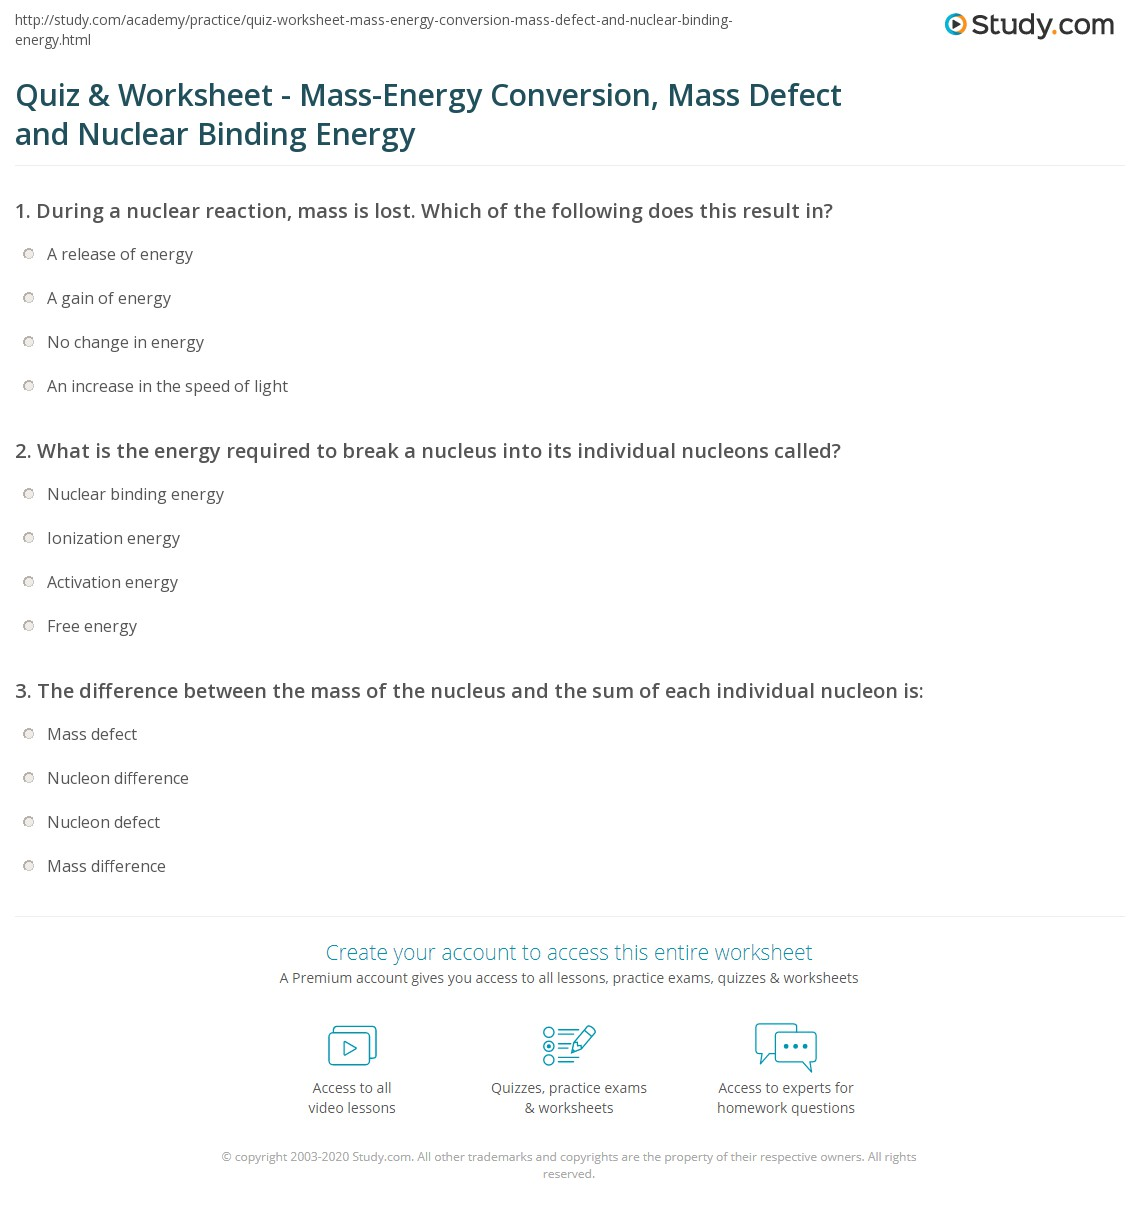 Worksheets Energy Conversions Worksheet quiz worksheet mass energy conversion defect and nuclear print binding worksheet